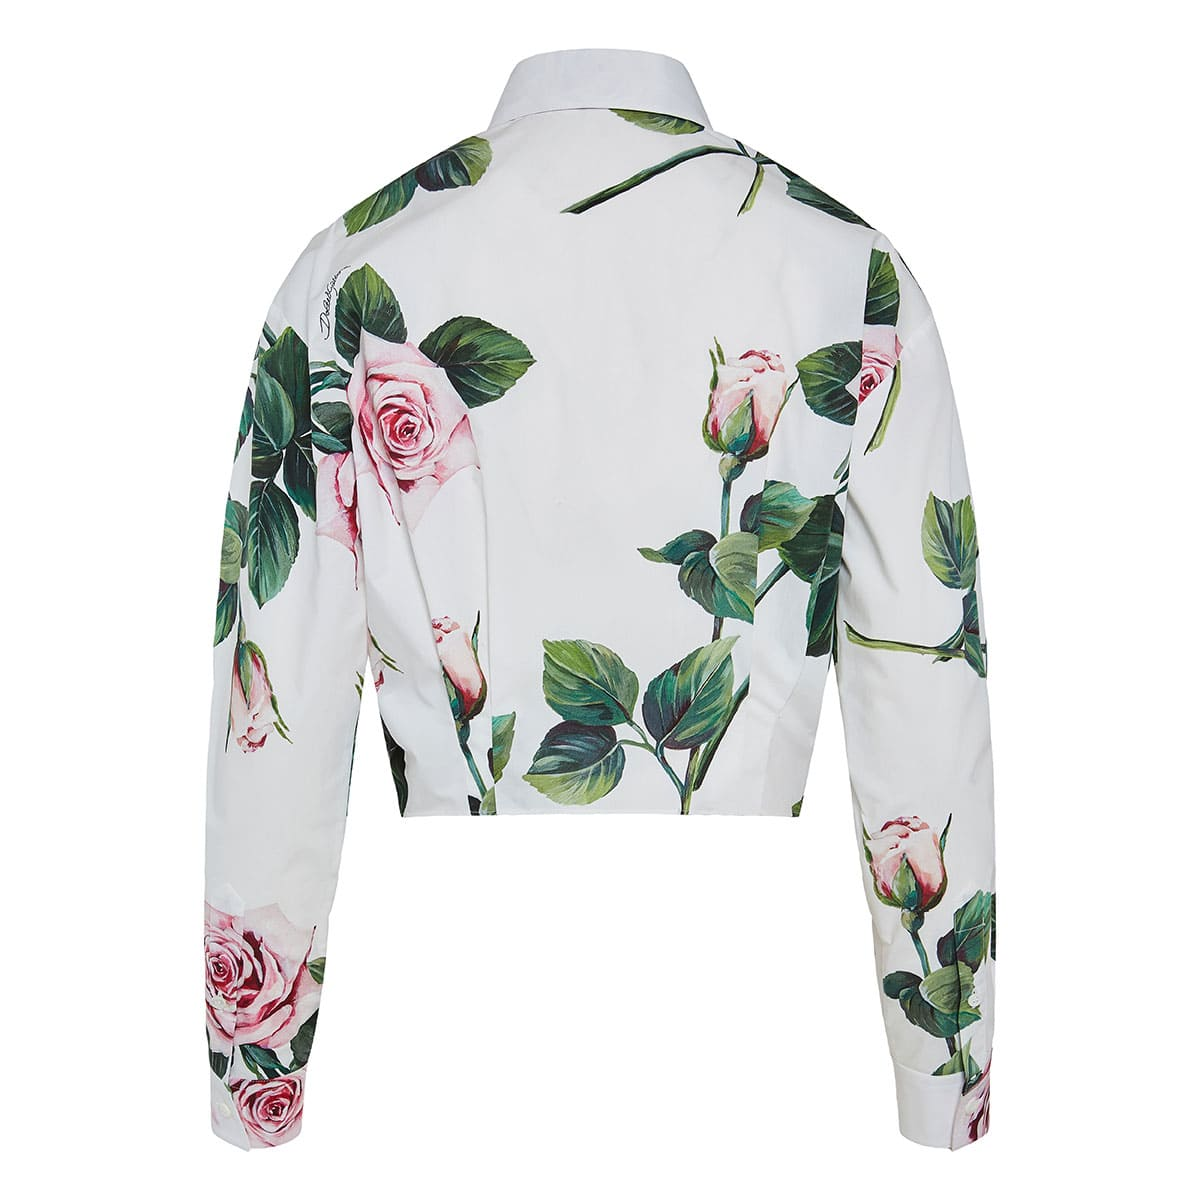 Floral knotted cropped shirt